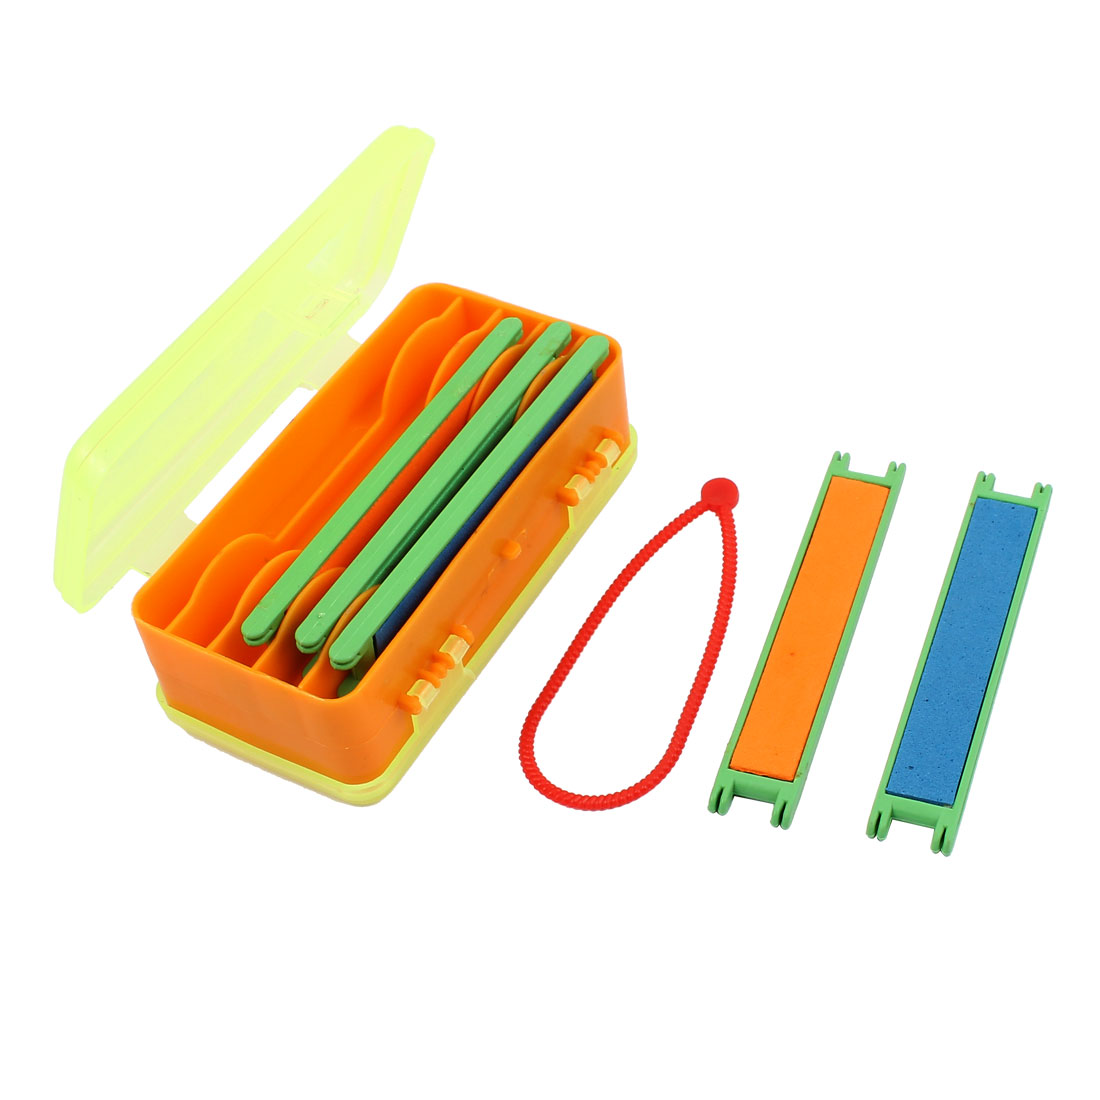 Fishing Plastic Rectangle 9 Compartment Double Layers Case Clear Yellow Orange